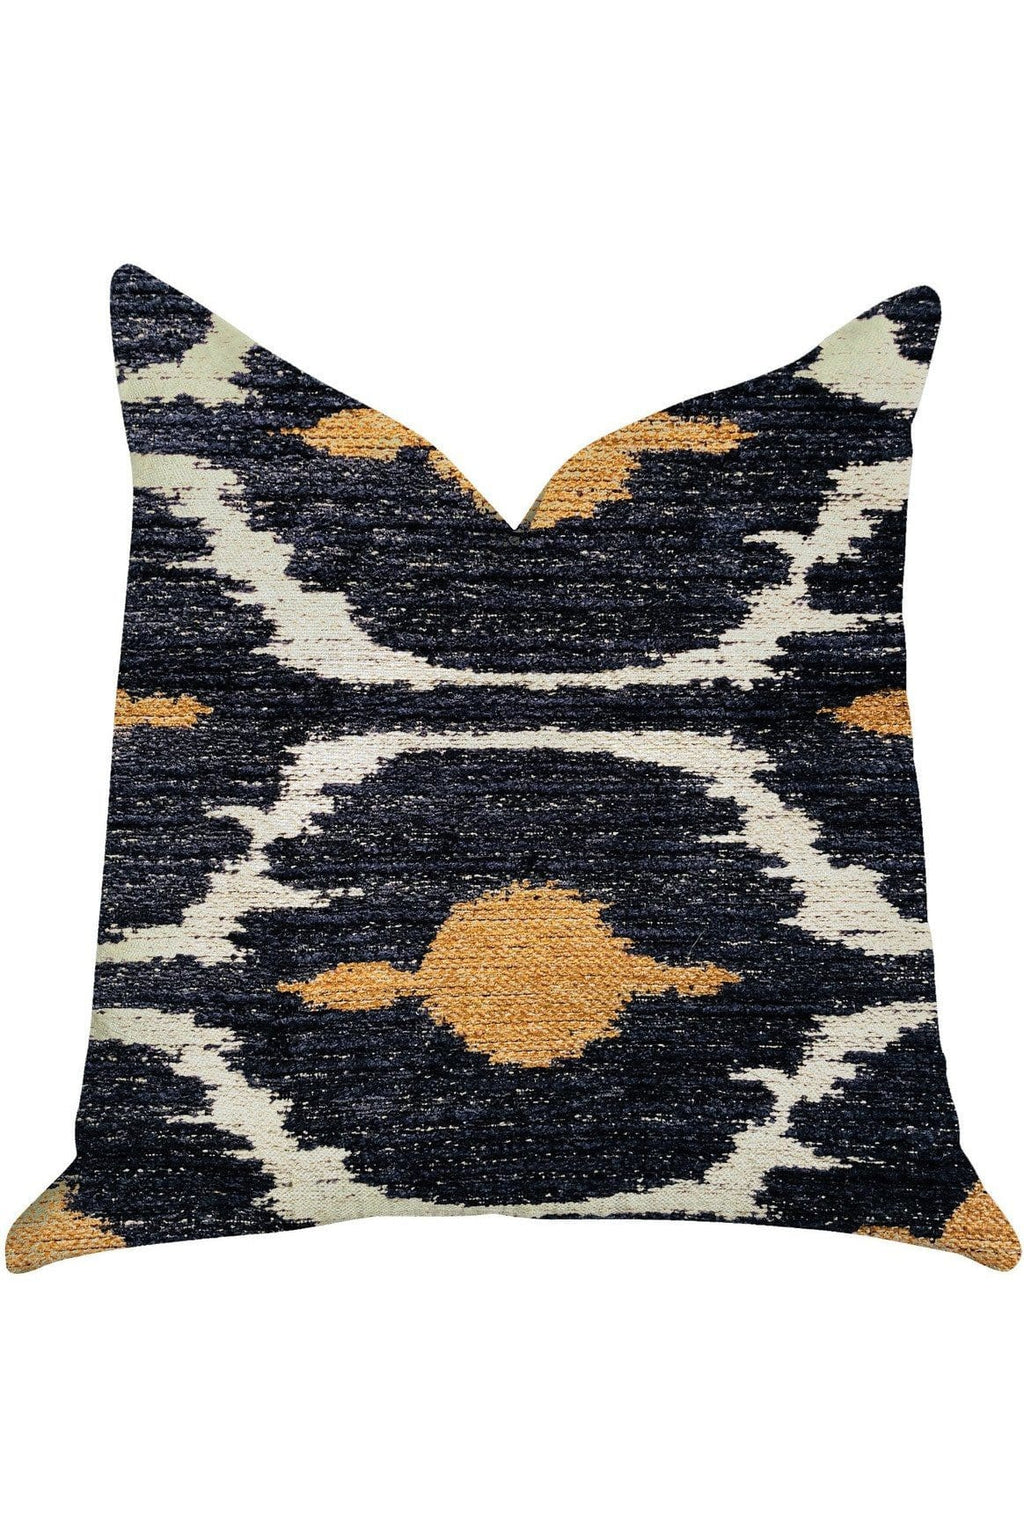 Bohemian Blue and Orange Ikat Luxury Throw Pillow - Himelhoch's